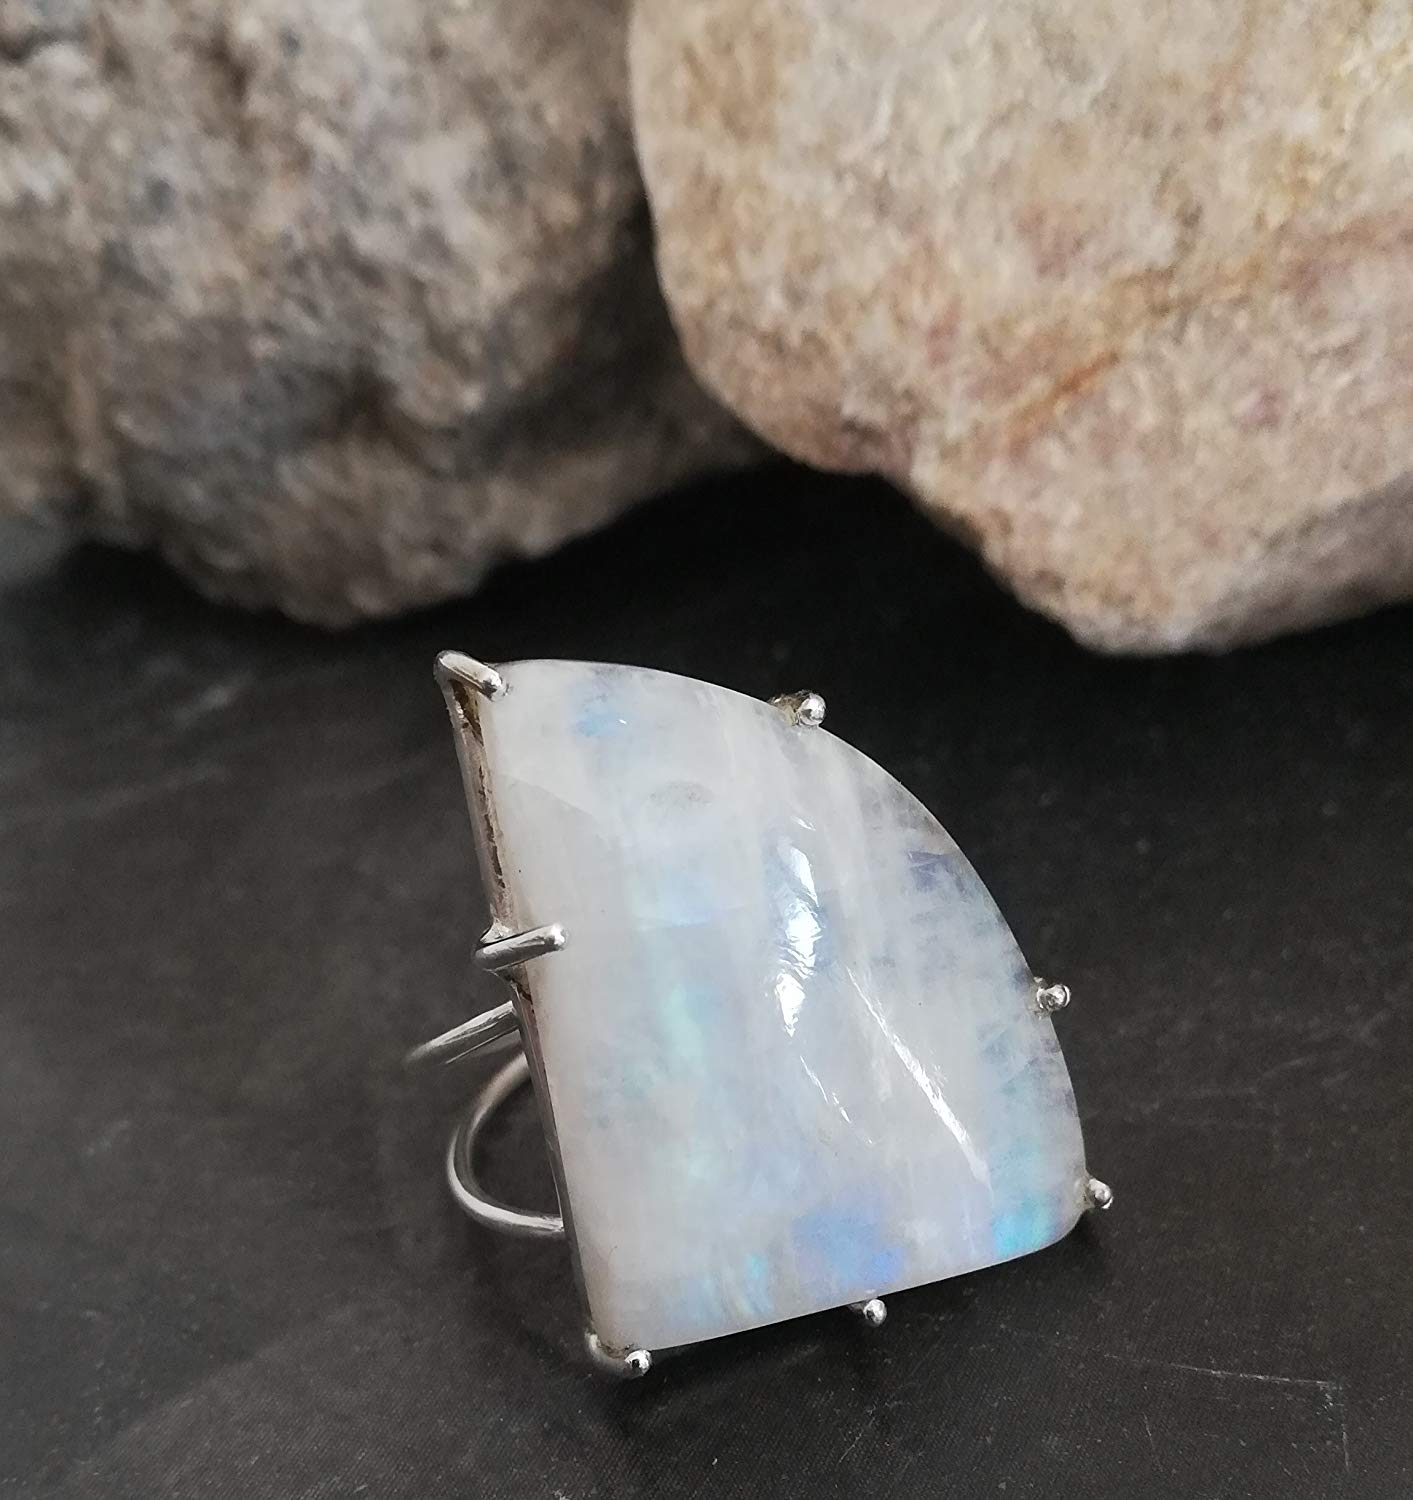 Rainbow Moonstone Ring, 925 Sterling Silver, Birthstone Ring, Triangle Shape Ring, Prong Ring, Touch Stone Ring, Bridesmaid Jewelry, Blue Flash Moonstone, Open Stone Ring, Meditation Ring,Fashion Ring